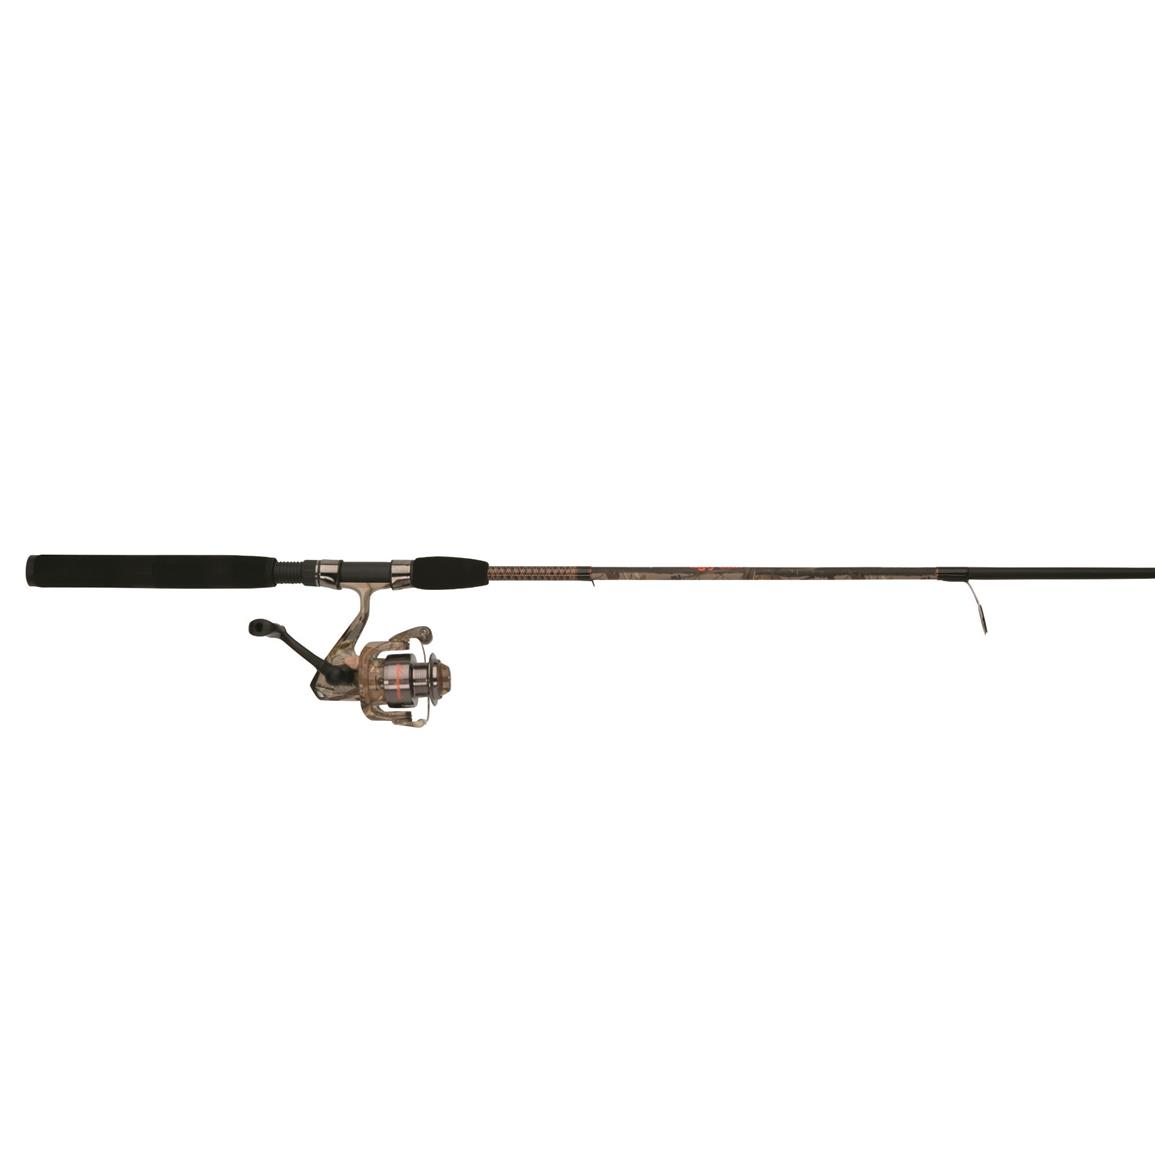 Shakespeare Ugly Stik Camo Spinning 6 foot 6 inch Rod & Reel Combo